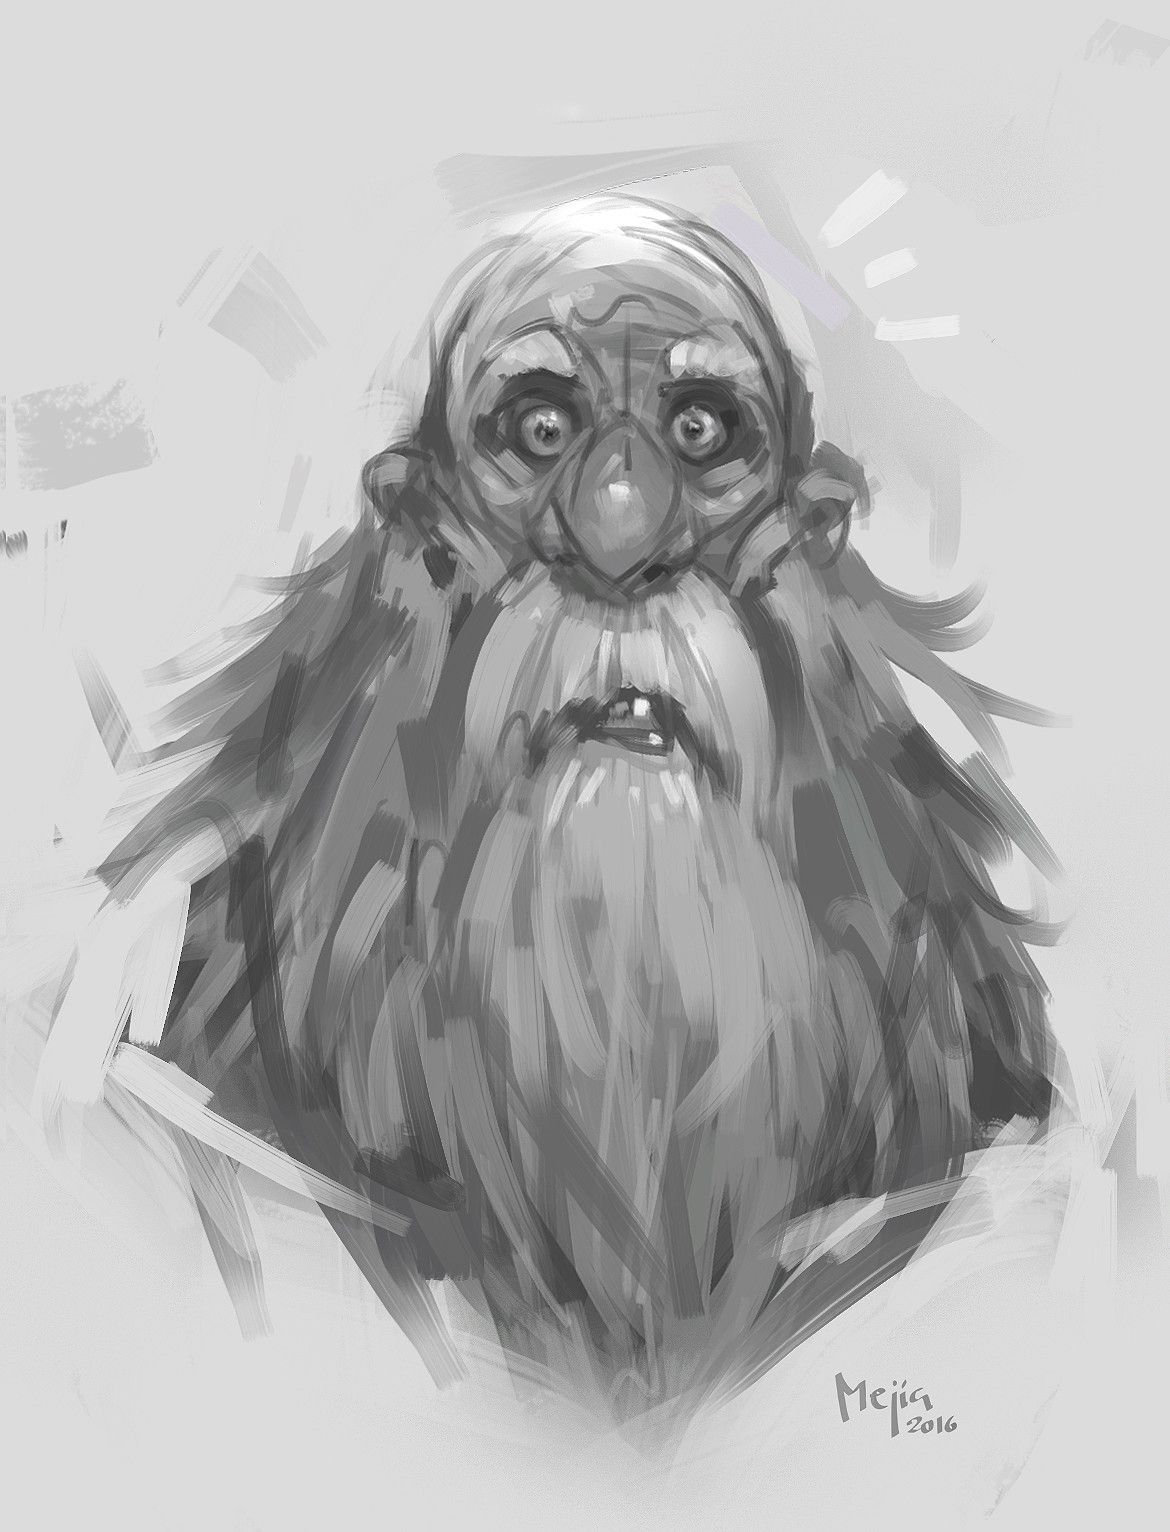 Old man sketch, Luis Mejía